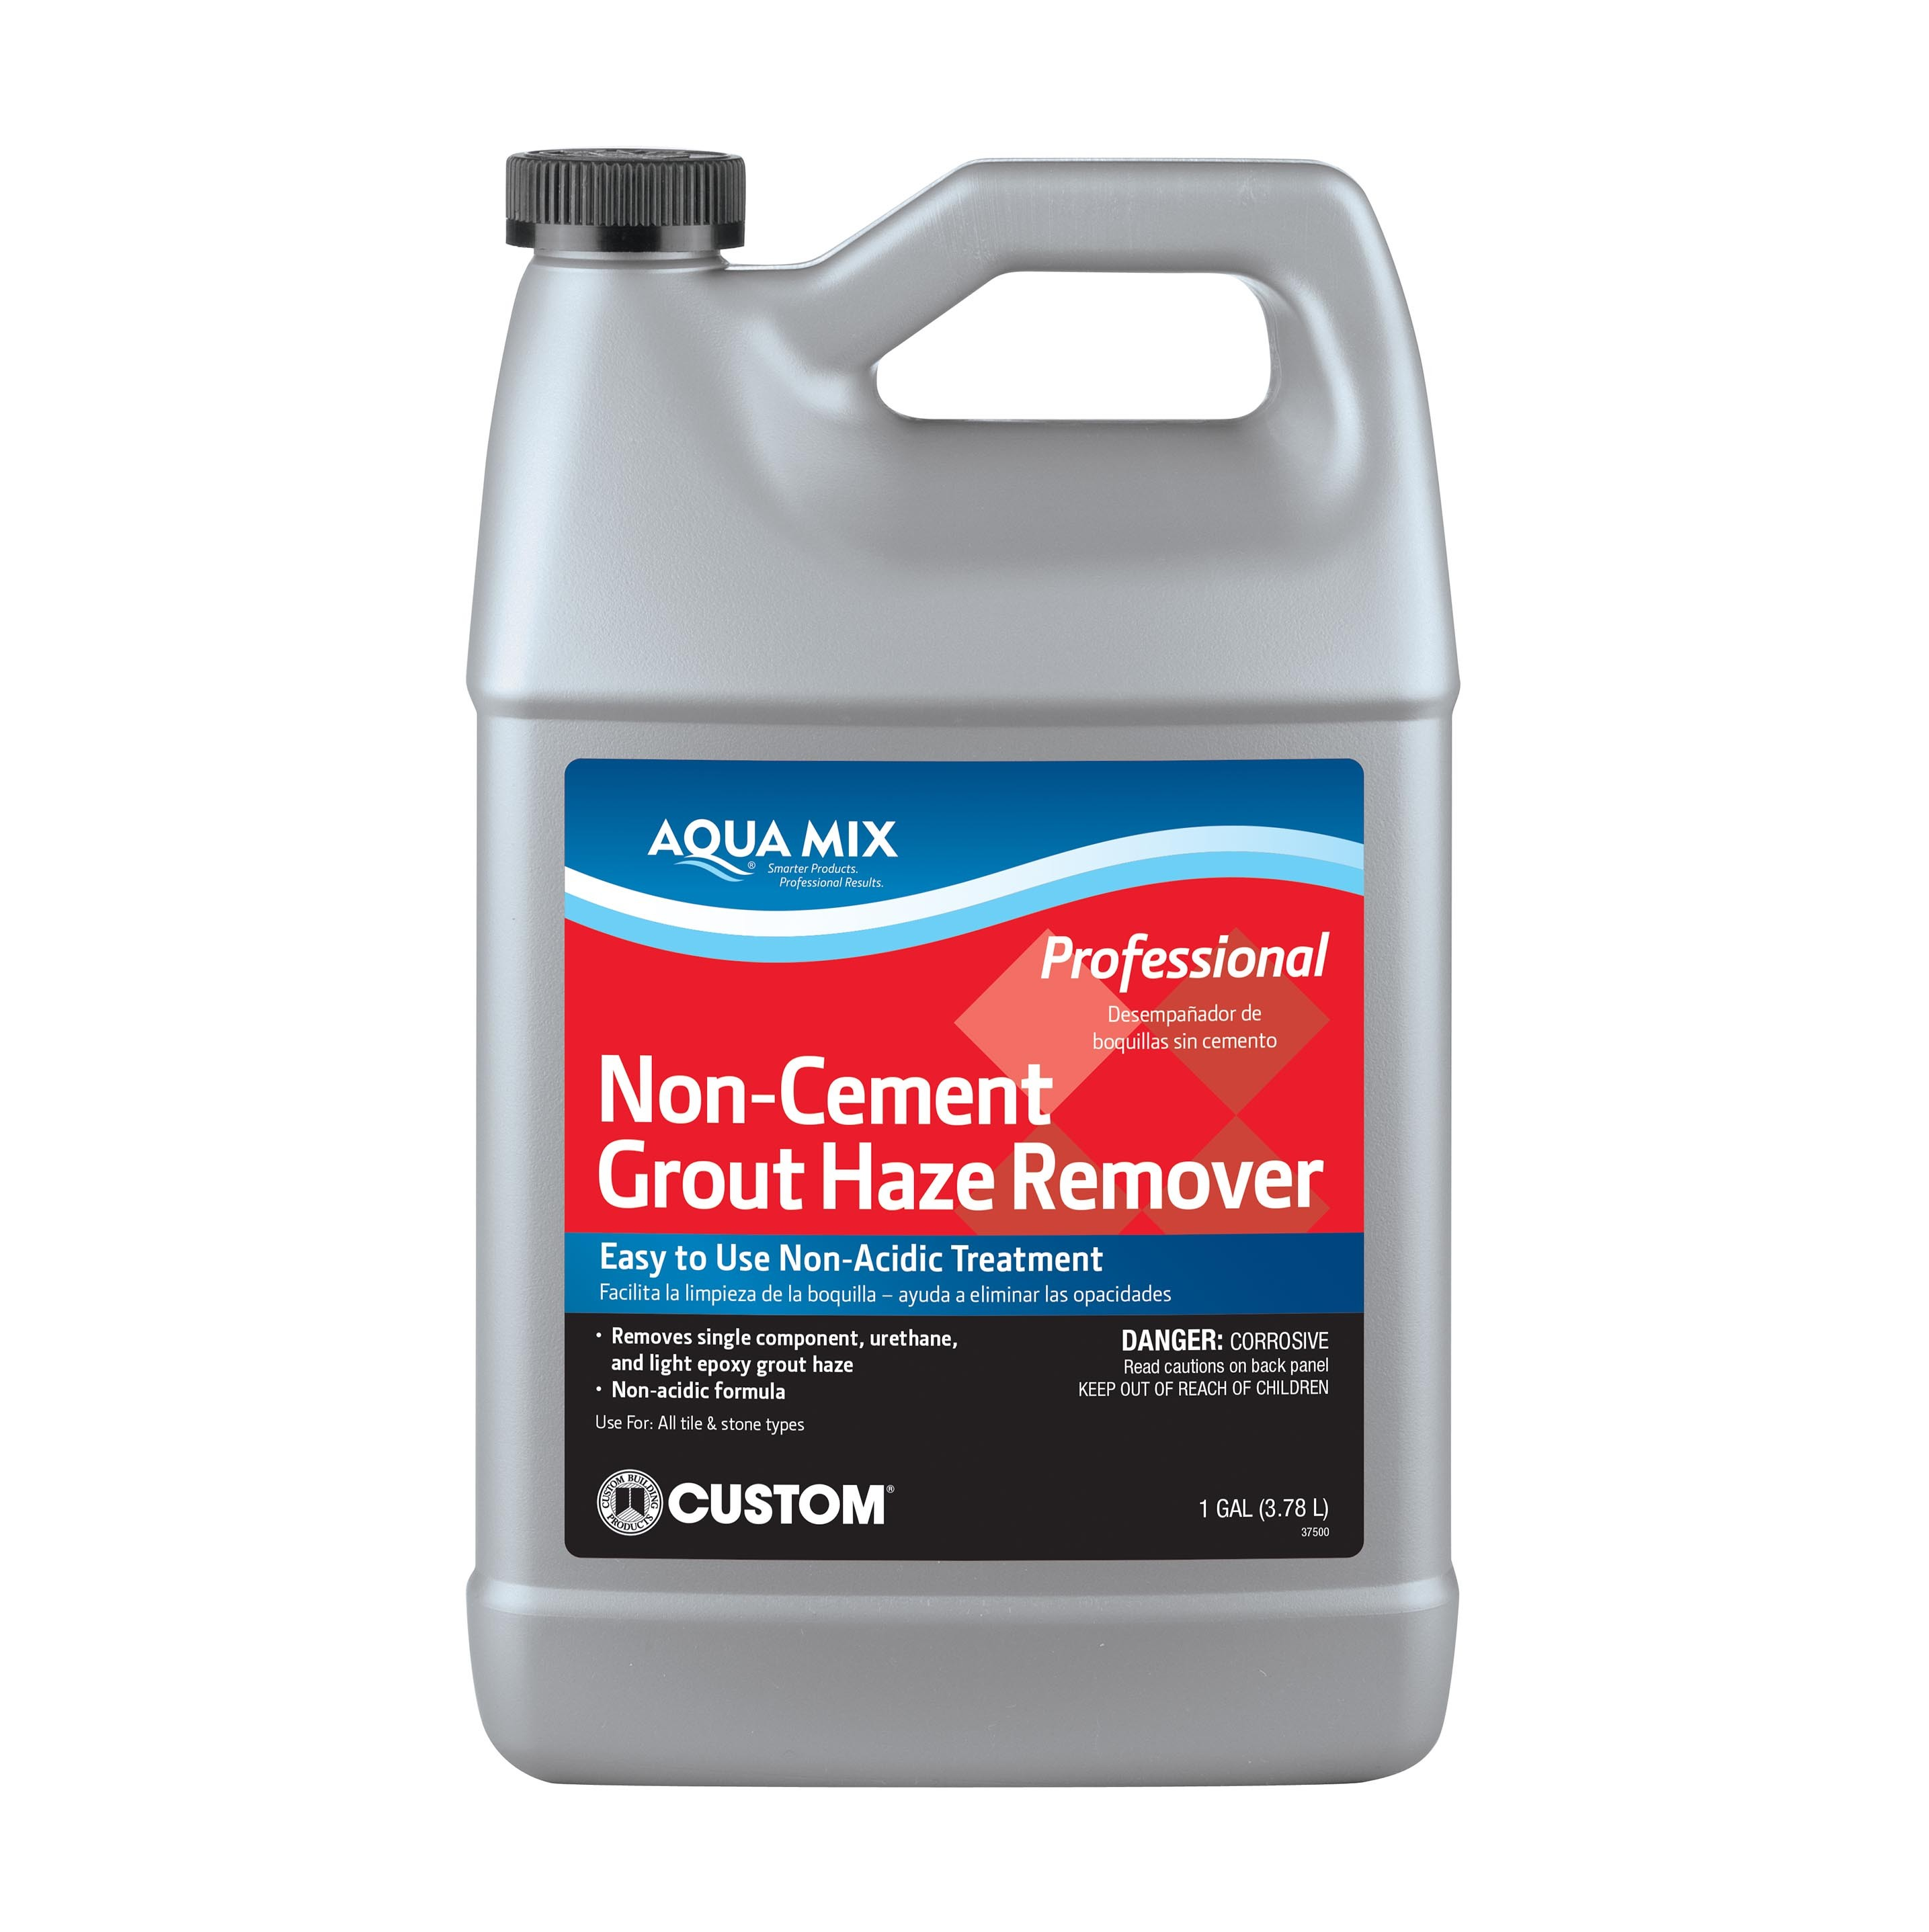 Install-Products-Photos Clean-and-Seal Gallery Non-Cement-Grout-Haze-Remover-Gallery-555